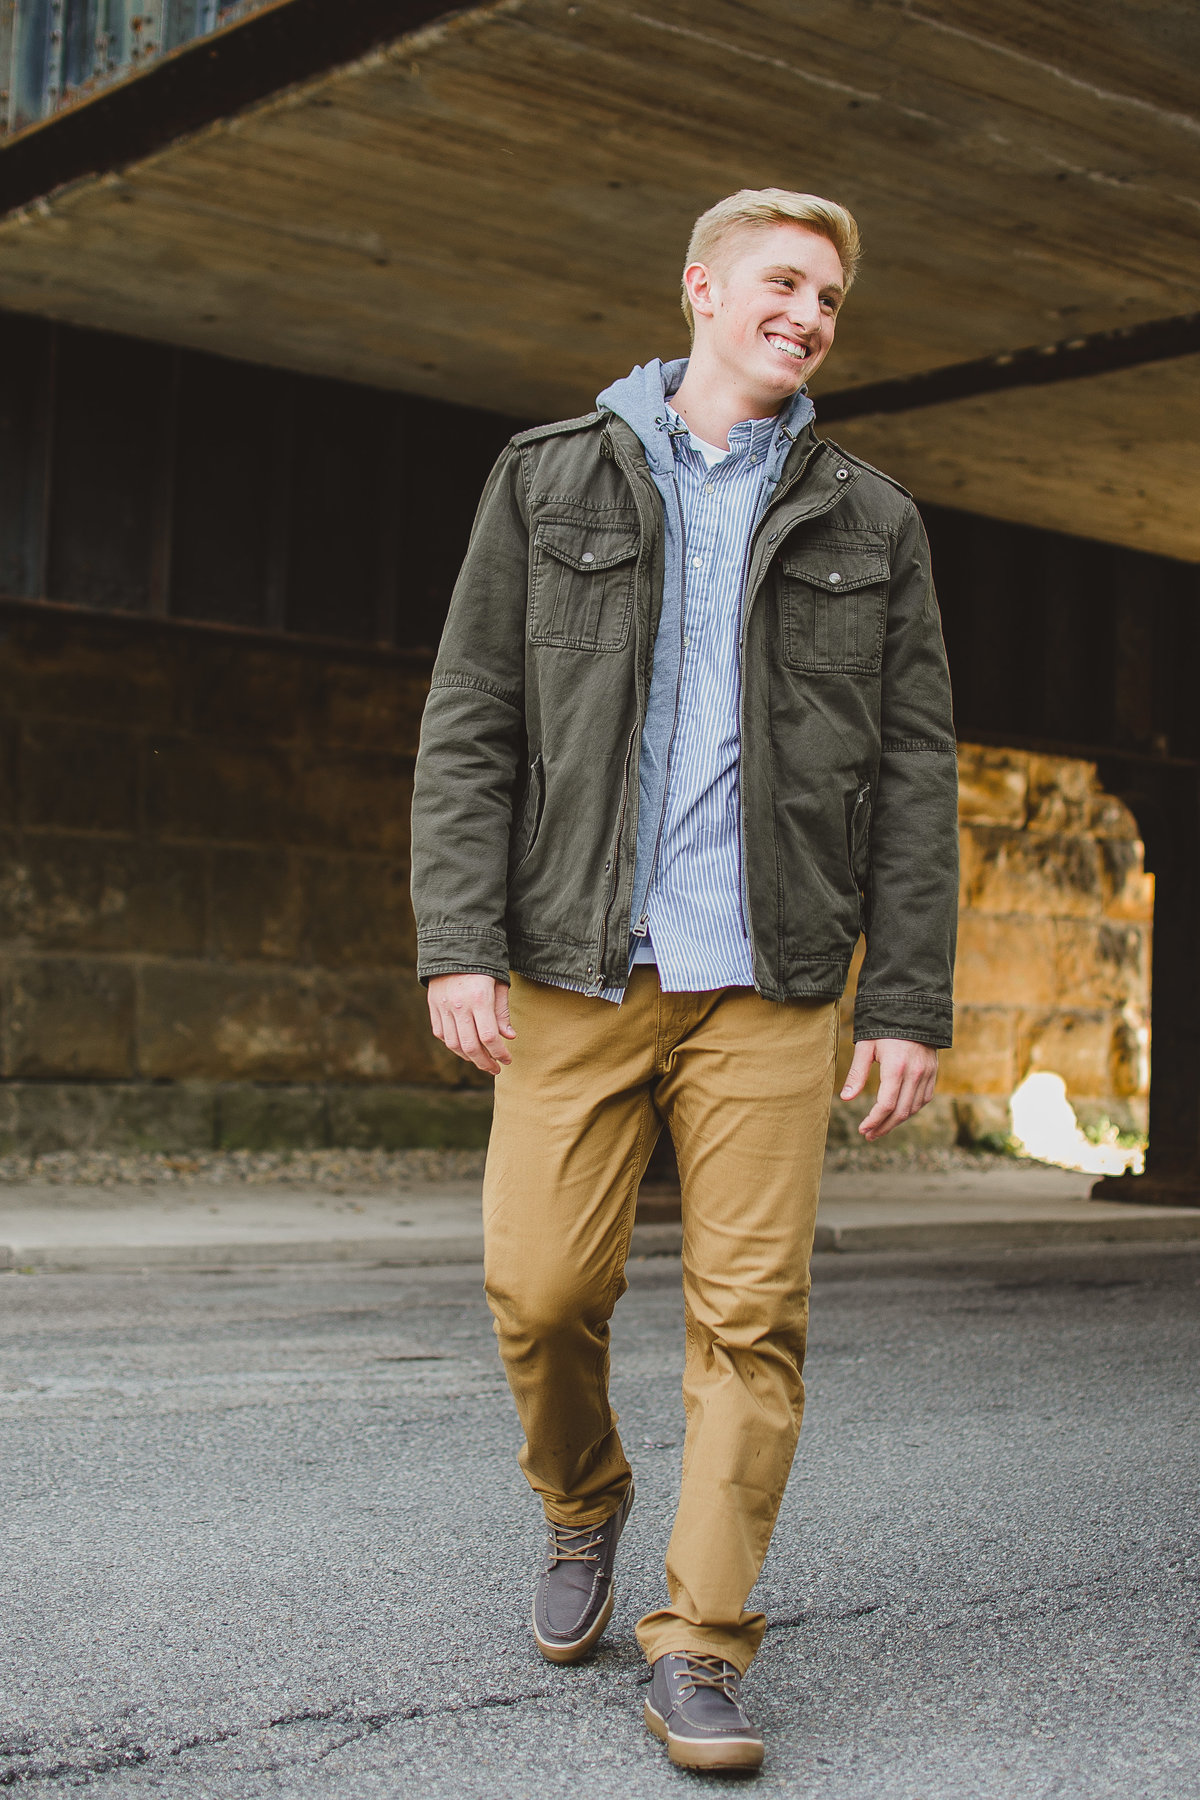 Senior Session in Streets